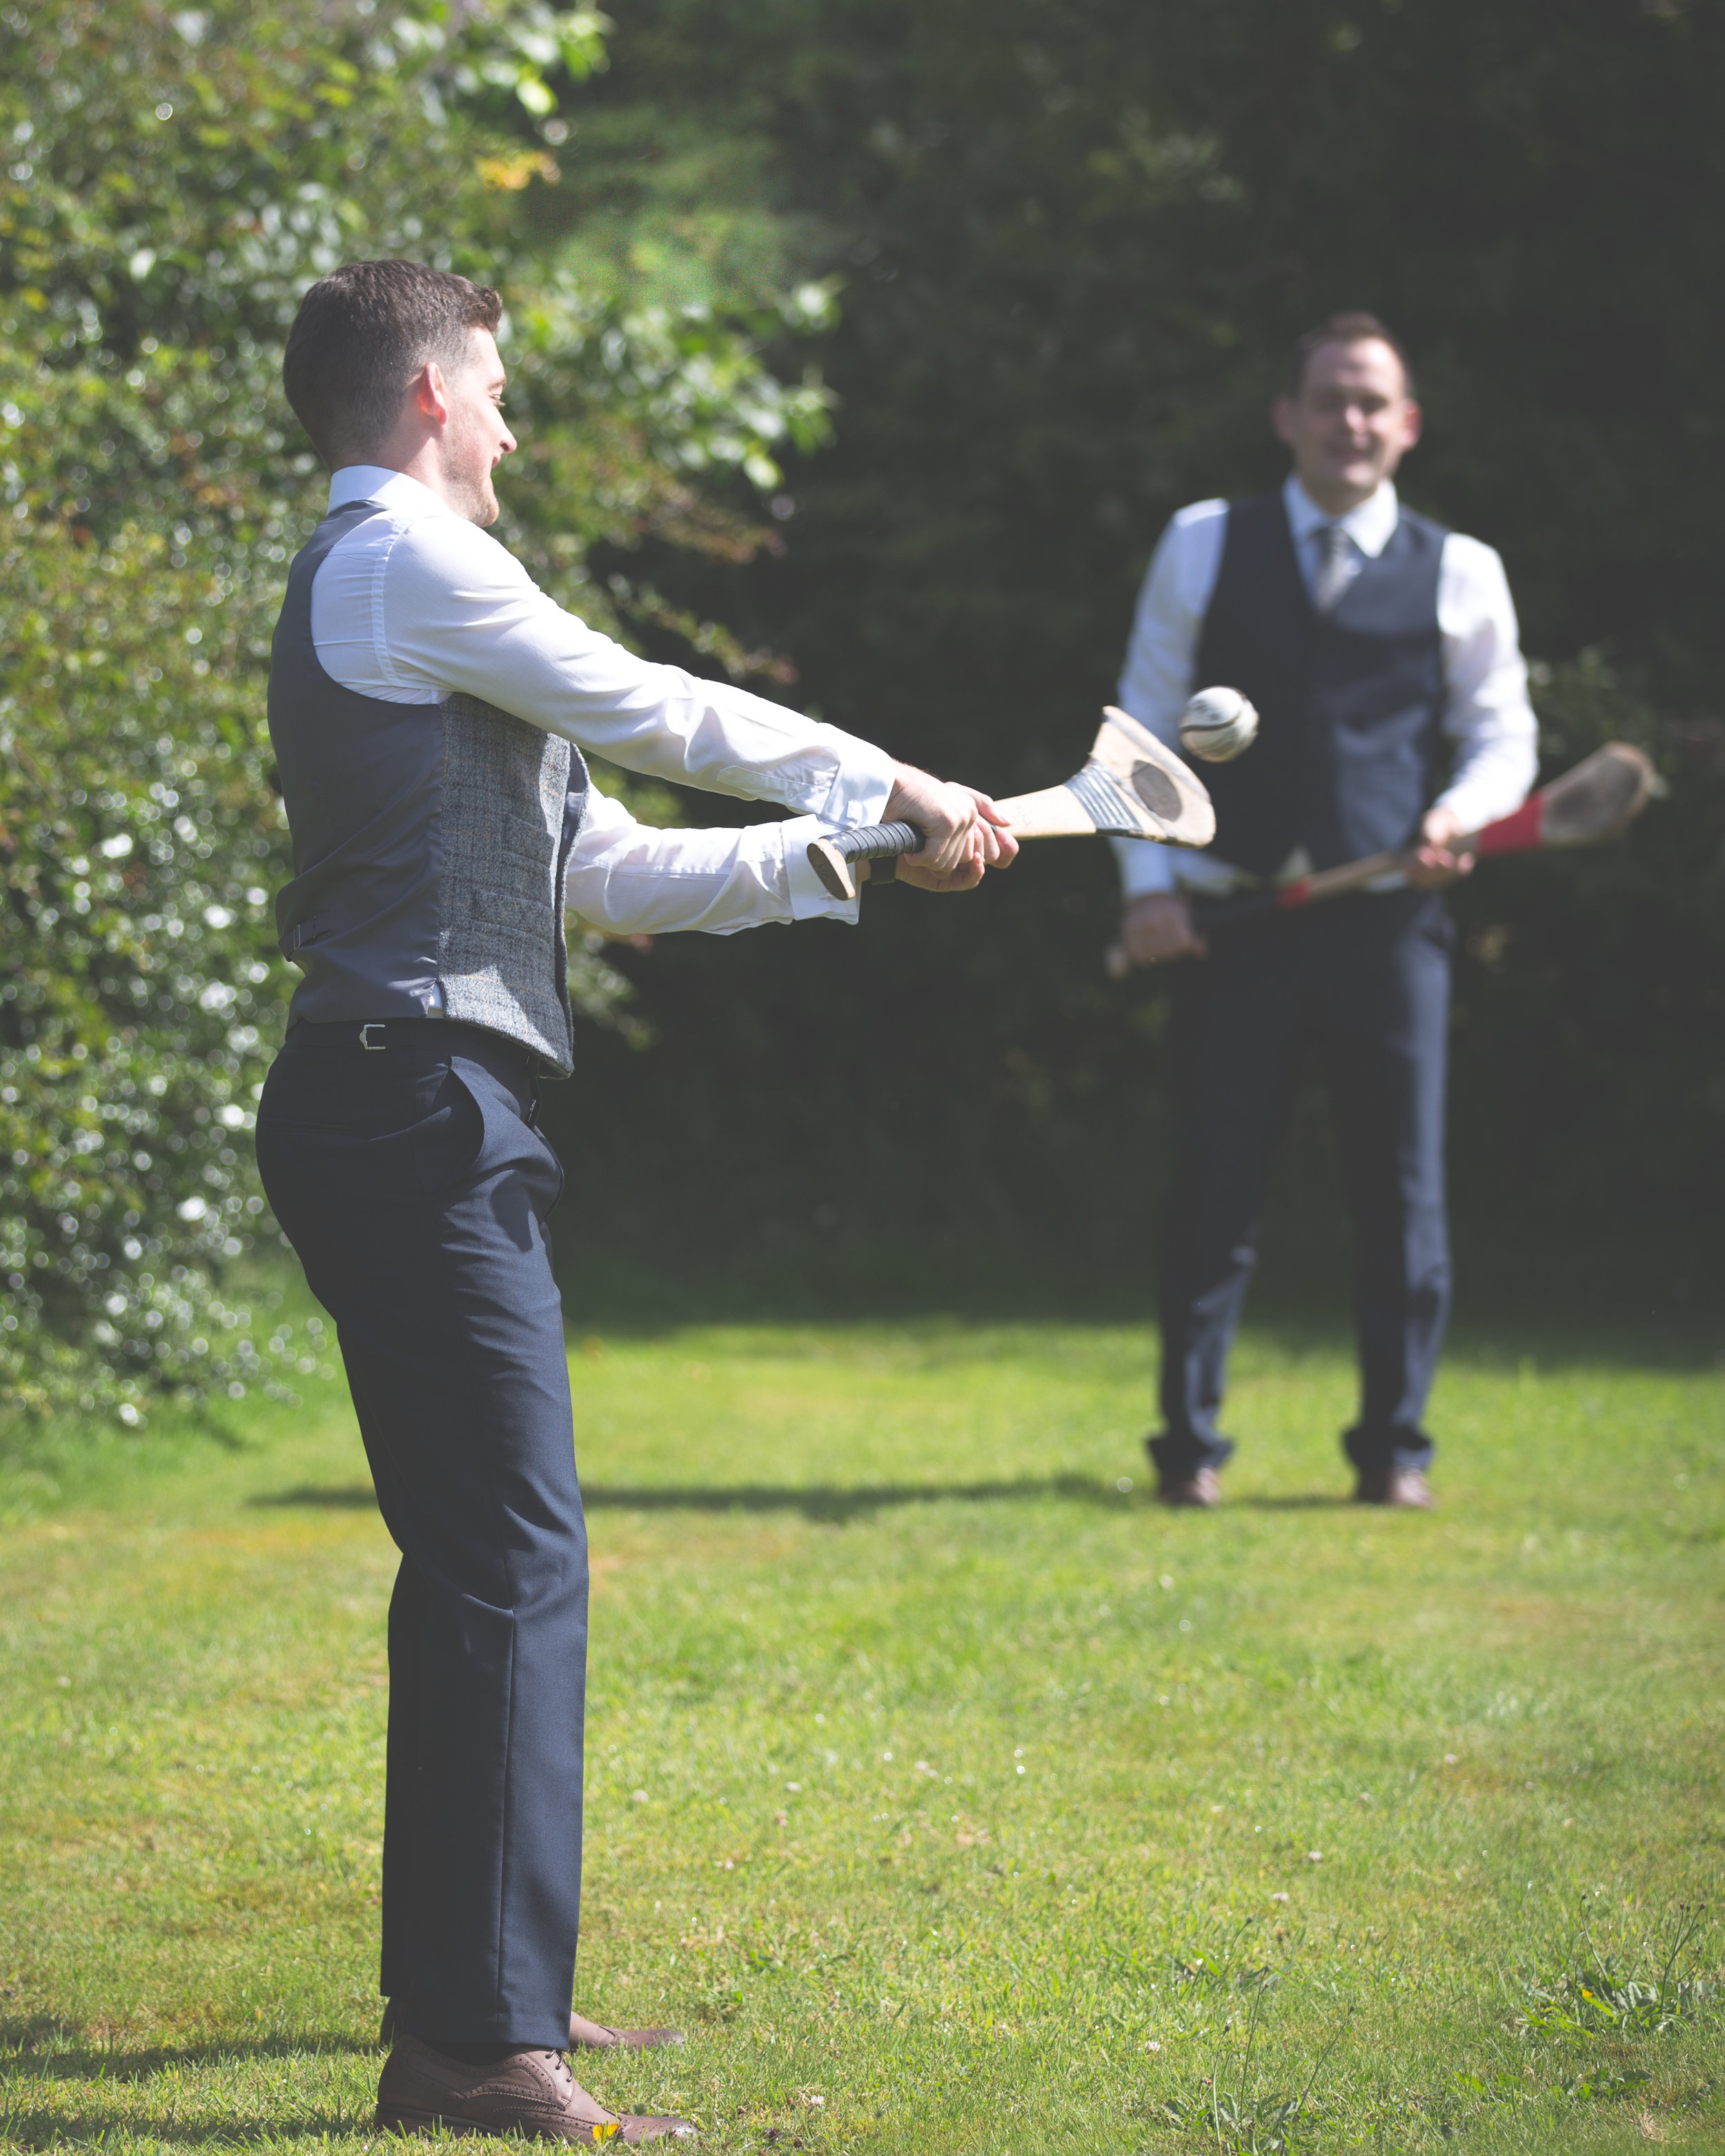 Brian McEwan Wedding Photography | Carol-Anne & Sean | Groom & Groomsmen-35.jpg